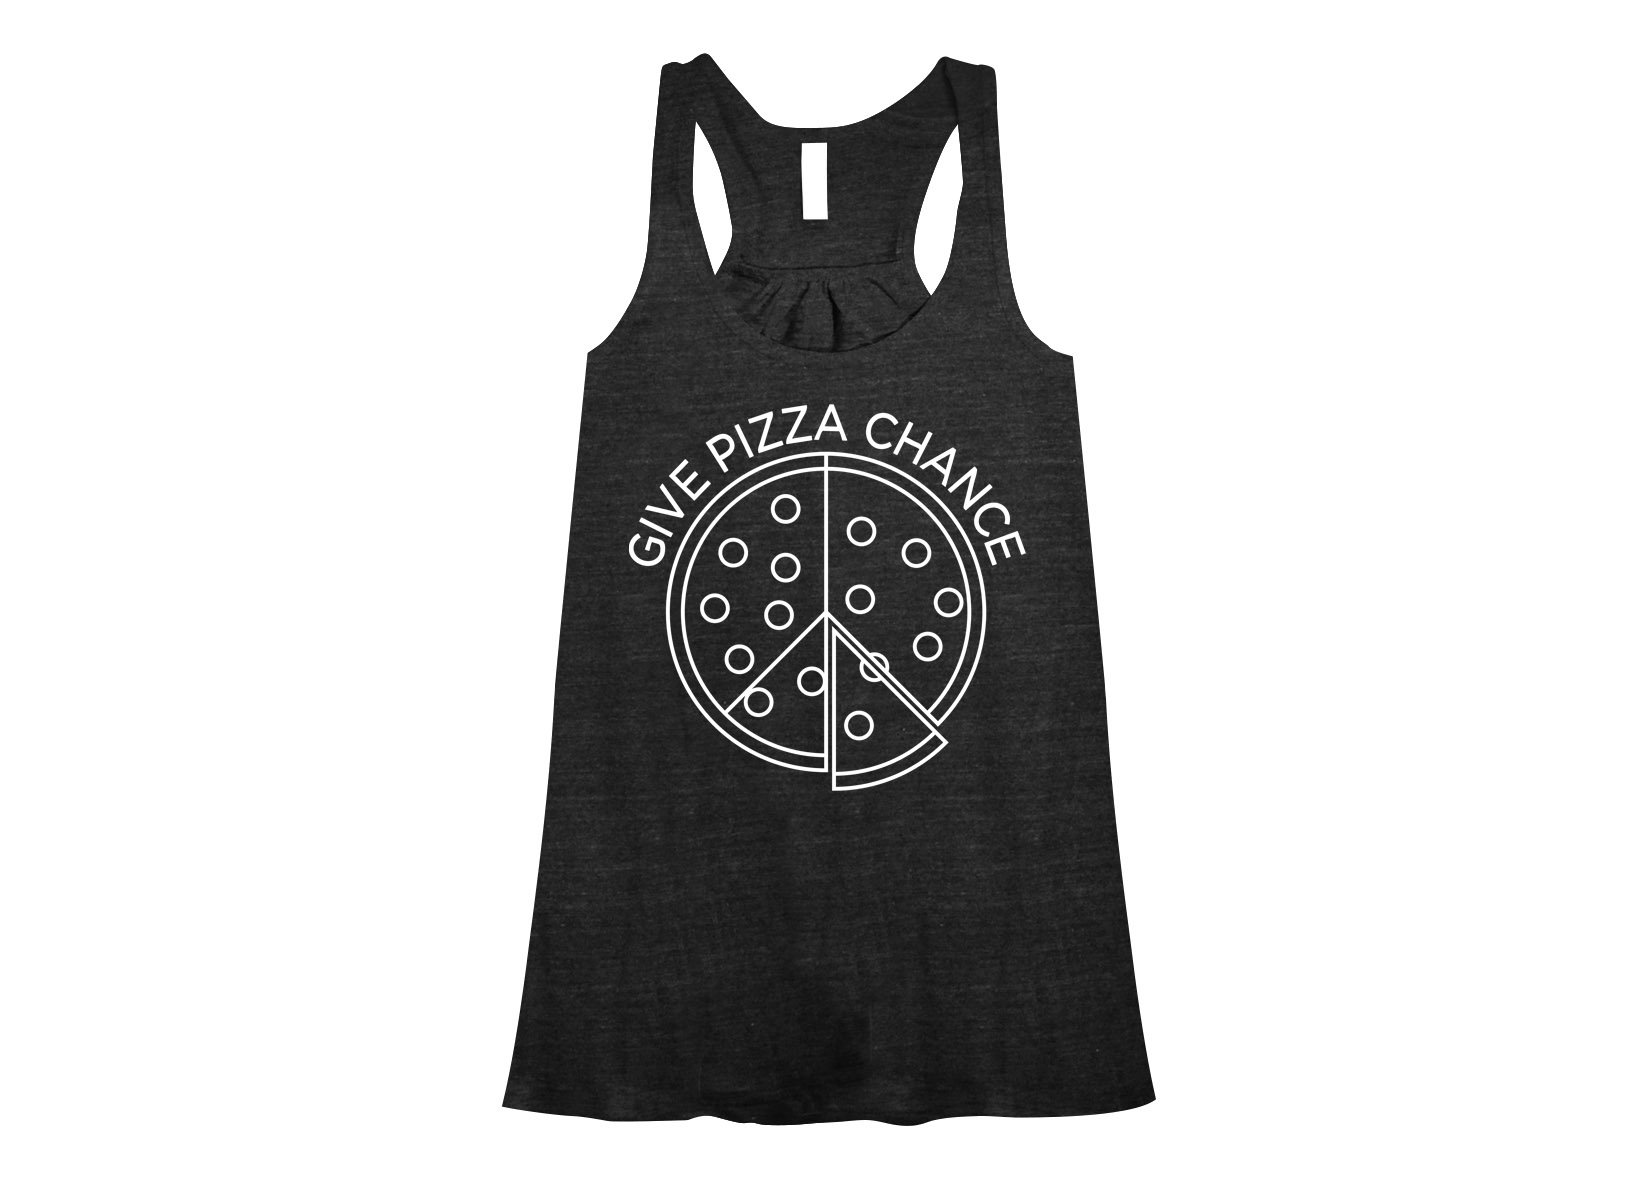 Give Pizza A Chance on Womens Tanks T-Shirt